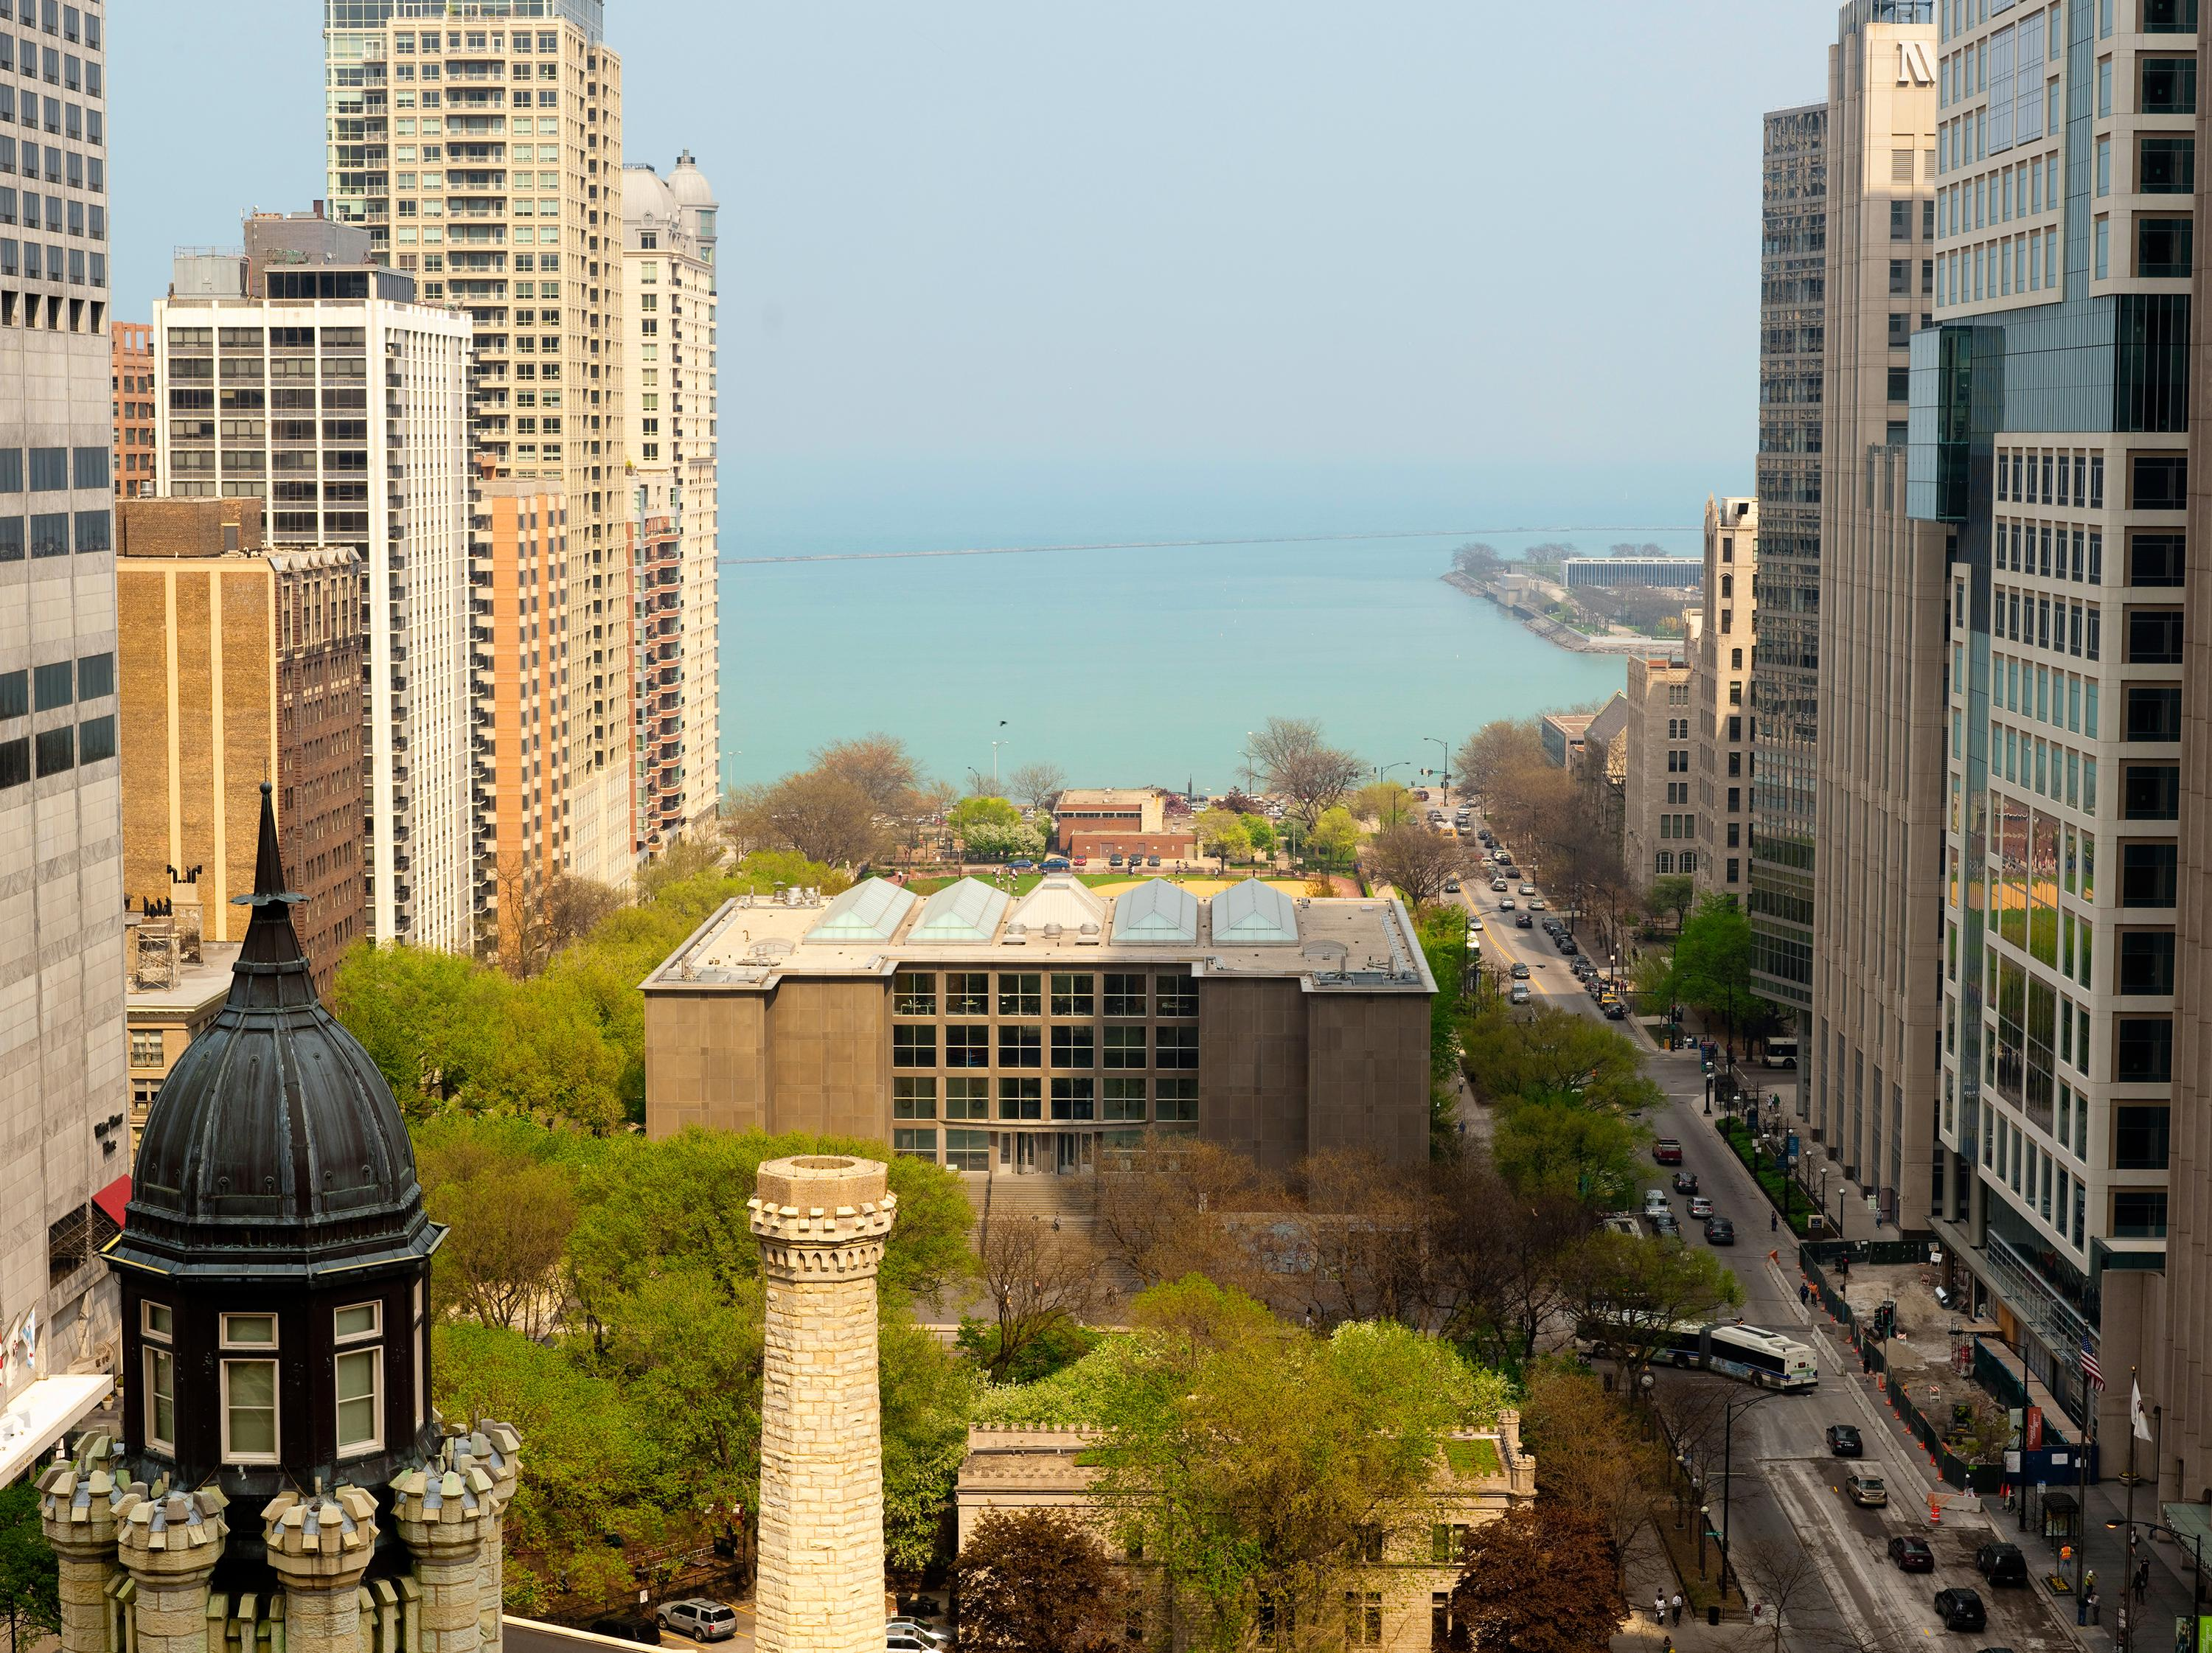 An aerial photograph captures views of the MCA, Lake Michigan, and surrounding buildings.